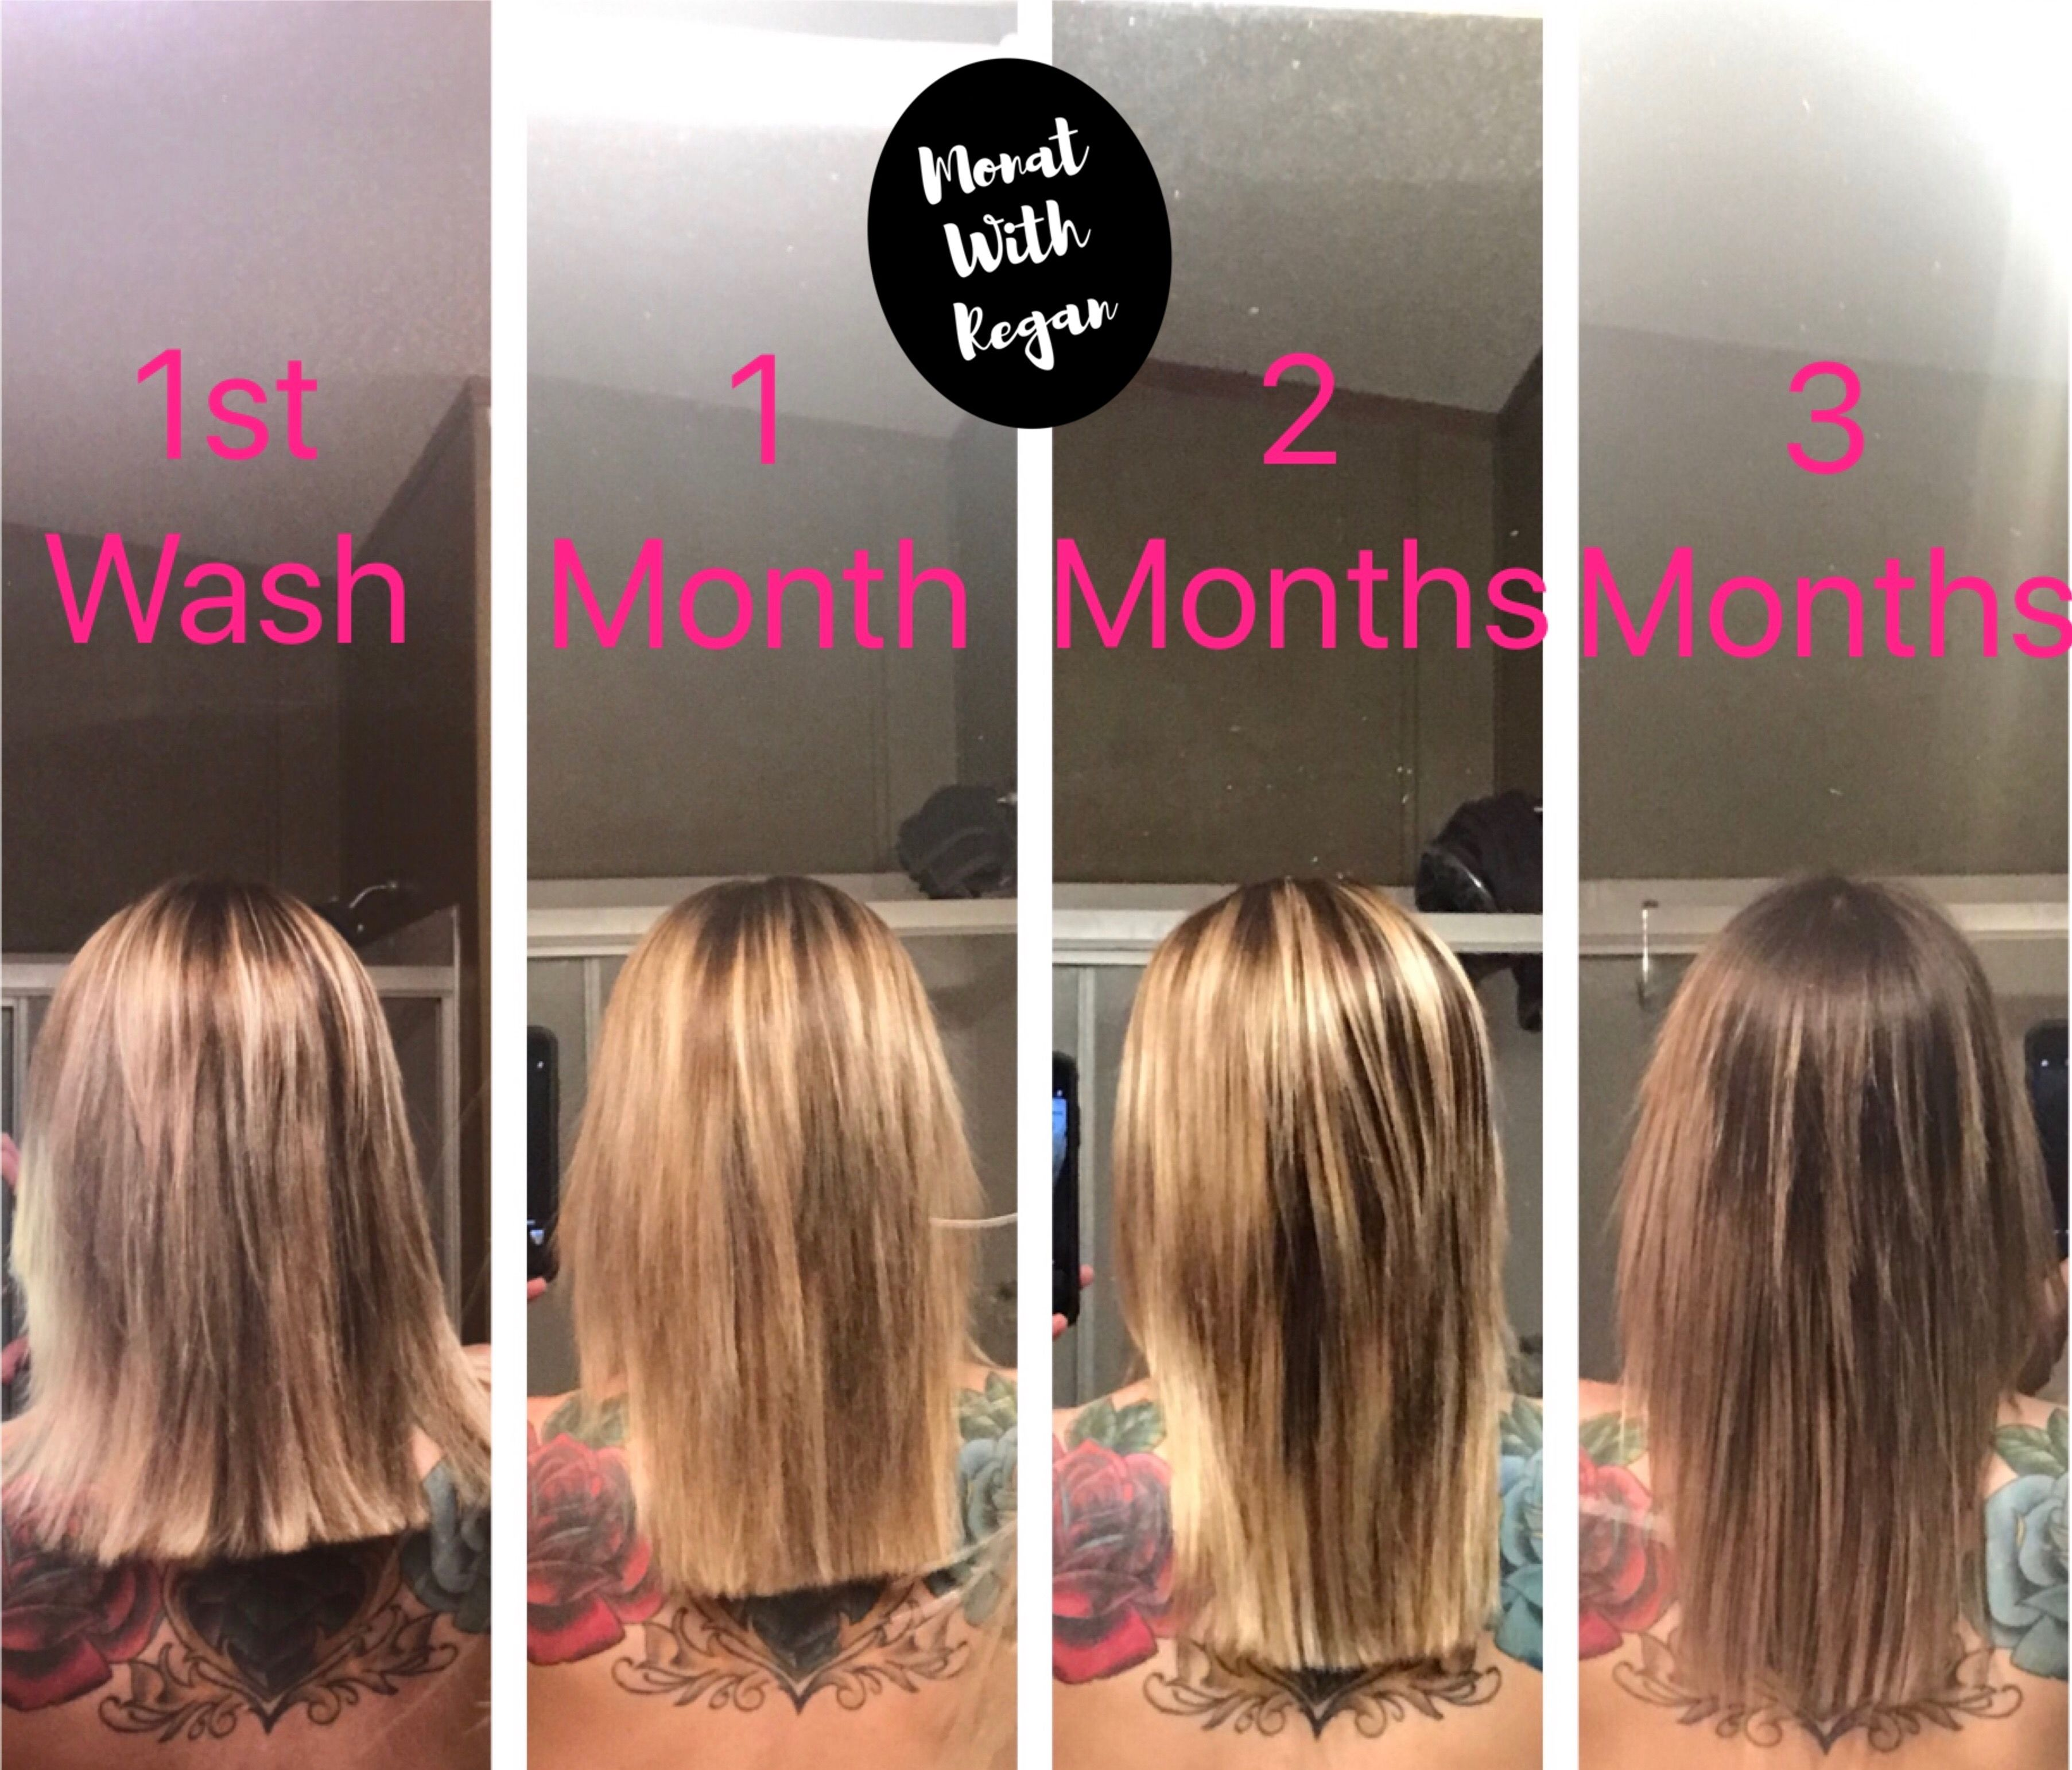 Thyroid problems? Monat saved my hair! Before and after